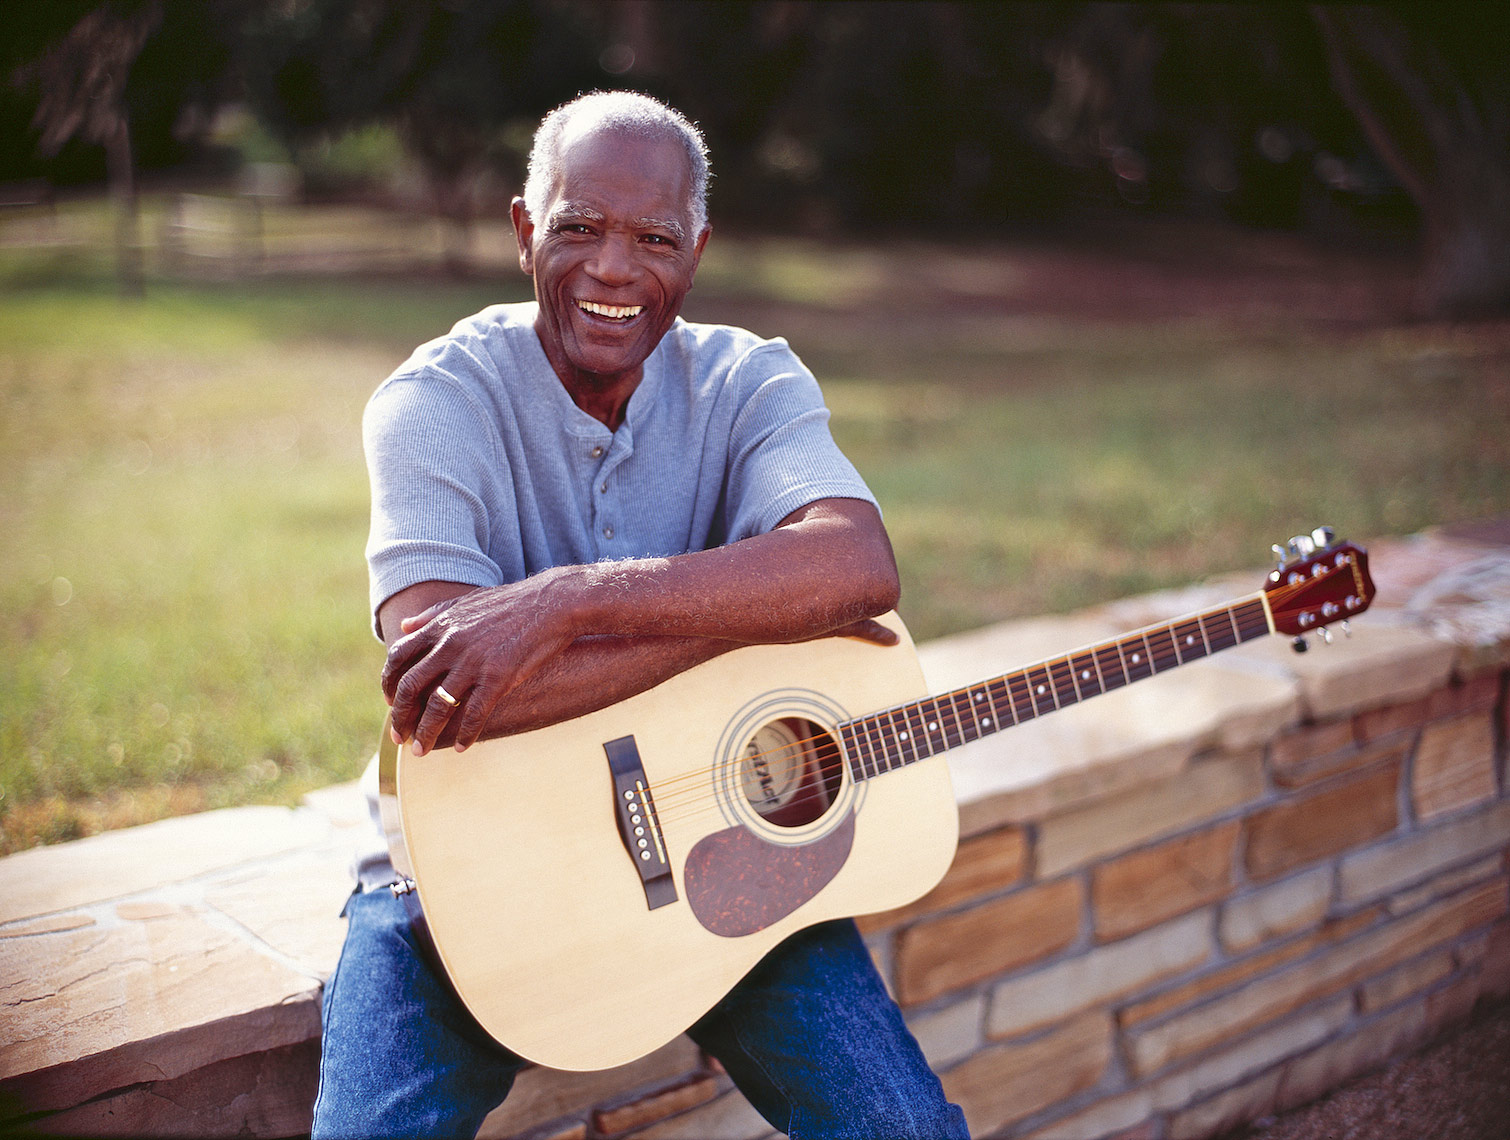 elderly black man portrait with guitar_Robert_Holland.jpg